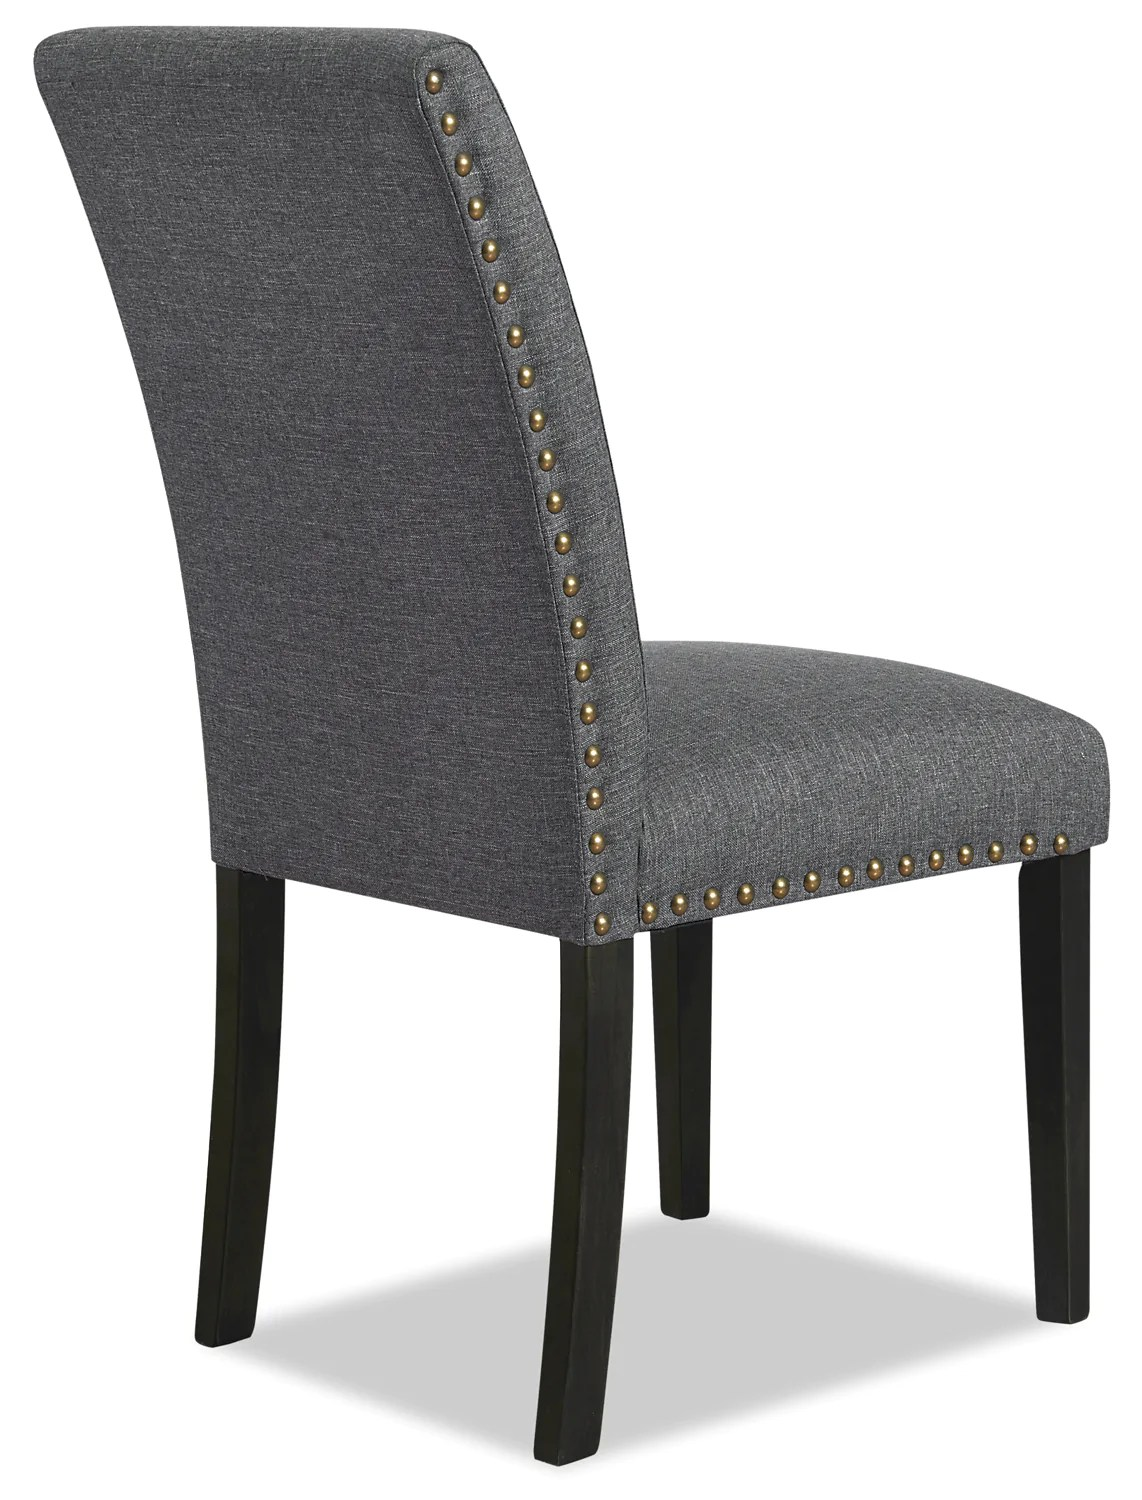 Studded Dining Chairs York Studded Dining Chair Grey